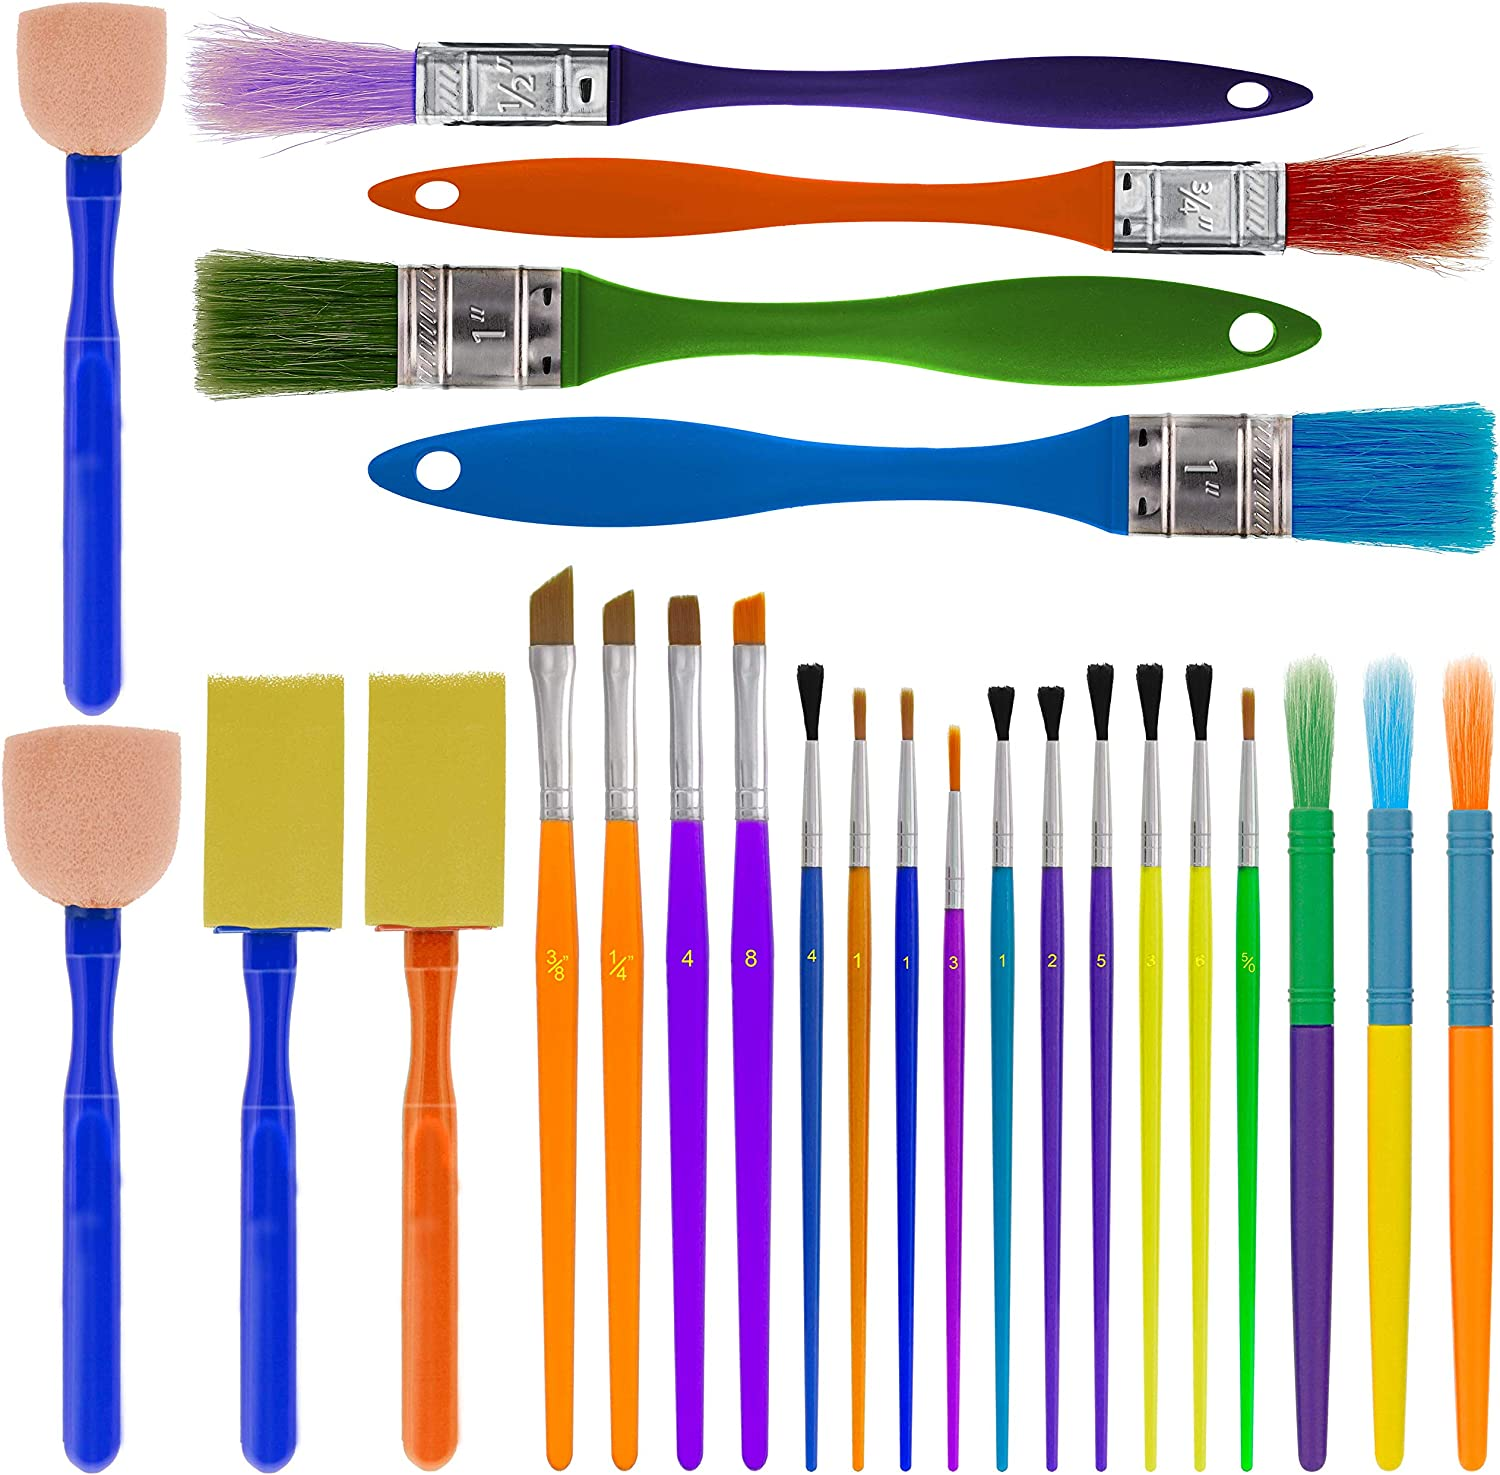 U.S. Art Supply 25-Piece Children's All Purpose Paint Brush Set - Artist Variety Value Pack, 6 Types, Flat, Round, Chip, Mop, Foam Tipped Brushes - Fun Kid's Party, School Student Class Craft Painting